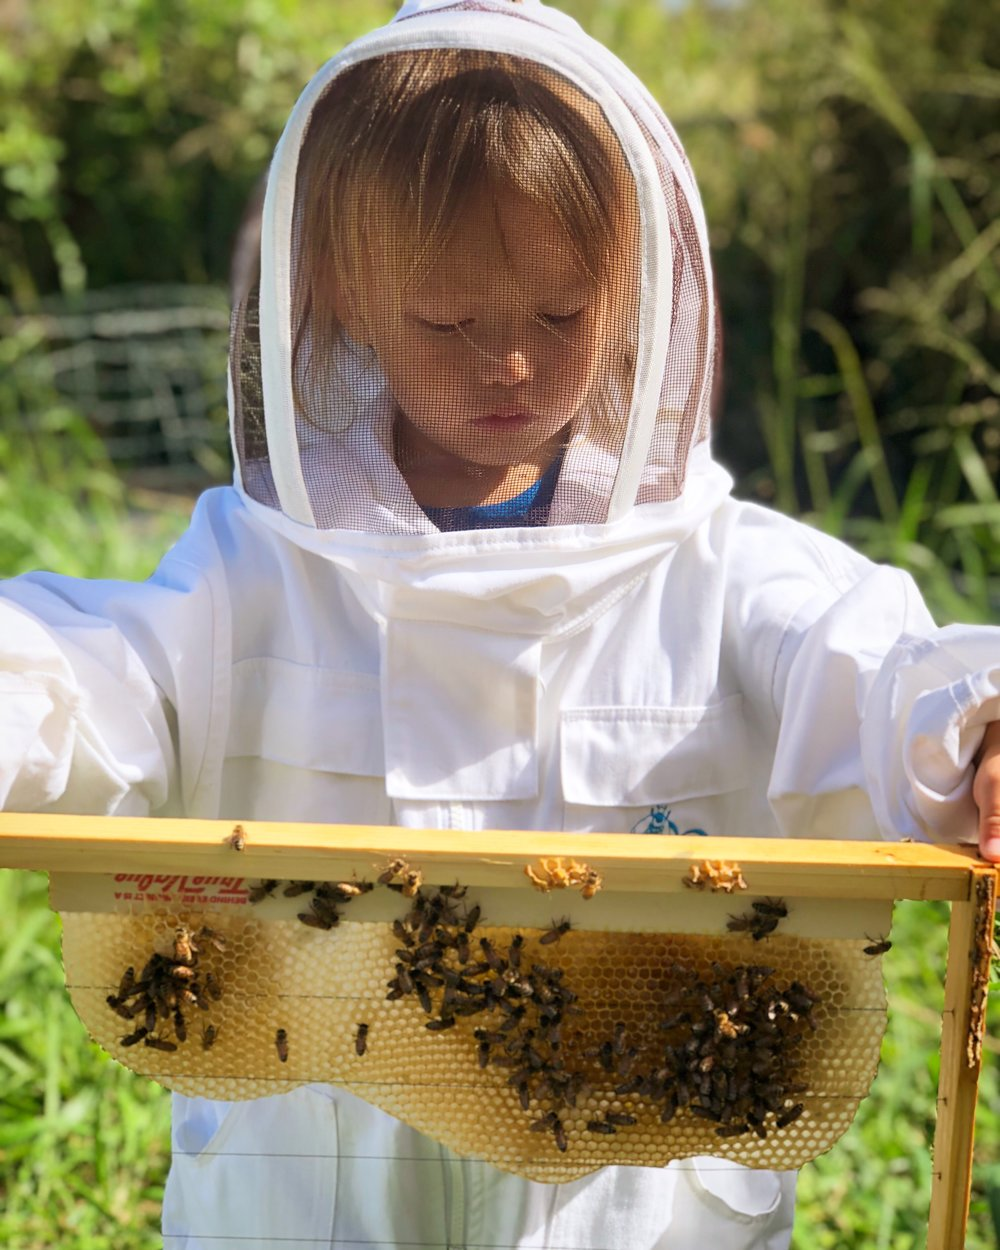 youngest beekeeper at 2 years old